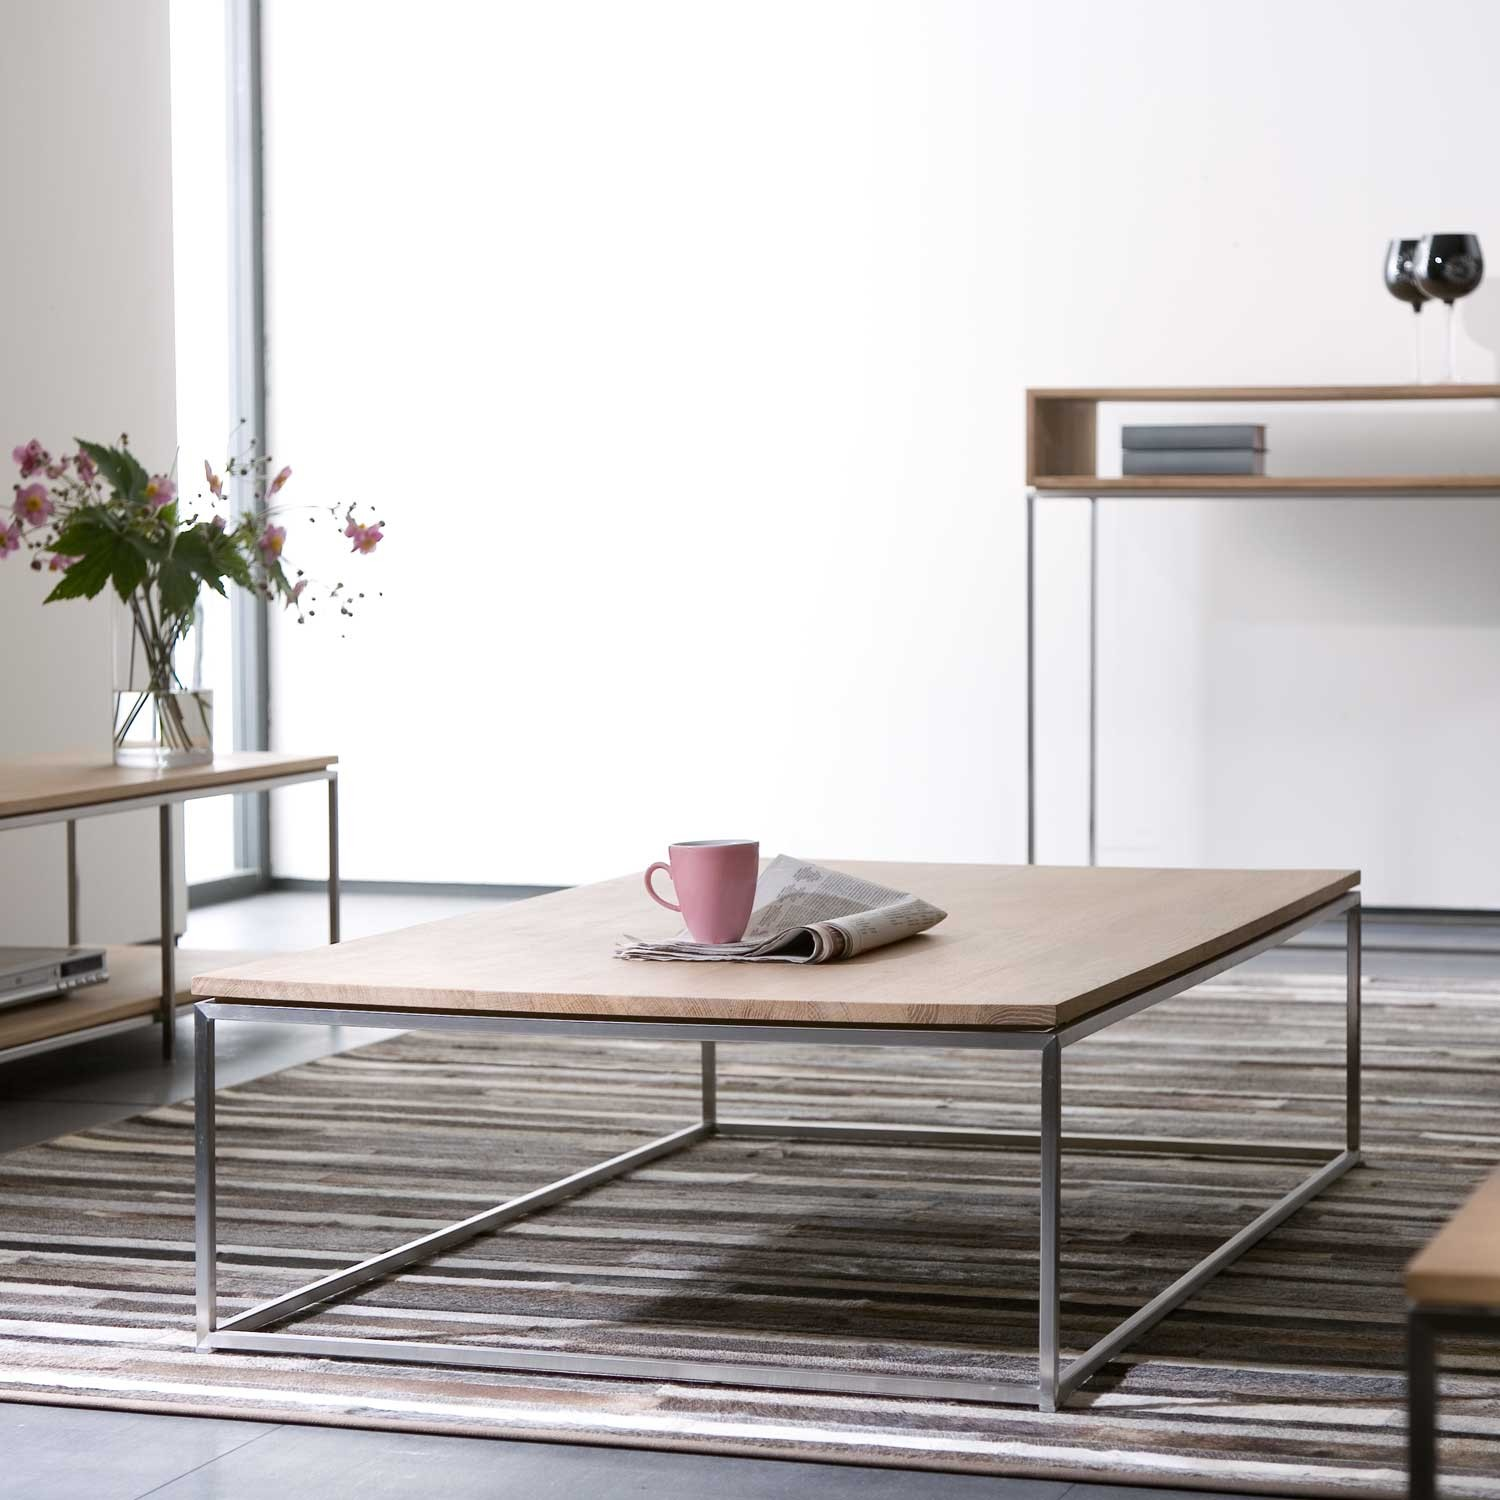 Solid Stainless Steel Coffee Table: Ethnicraft Thin Oak Coffee Table